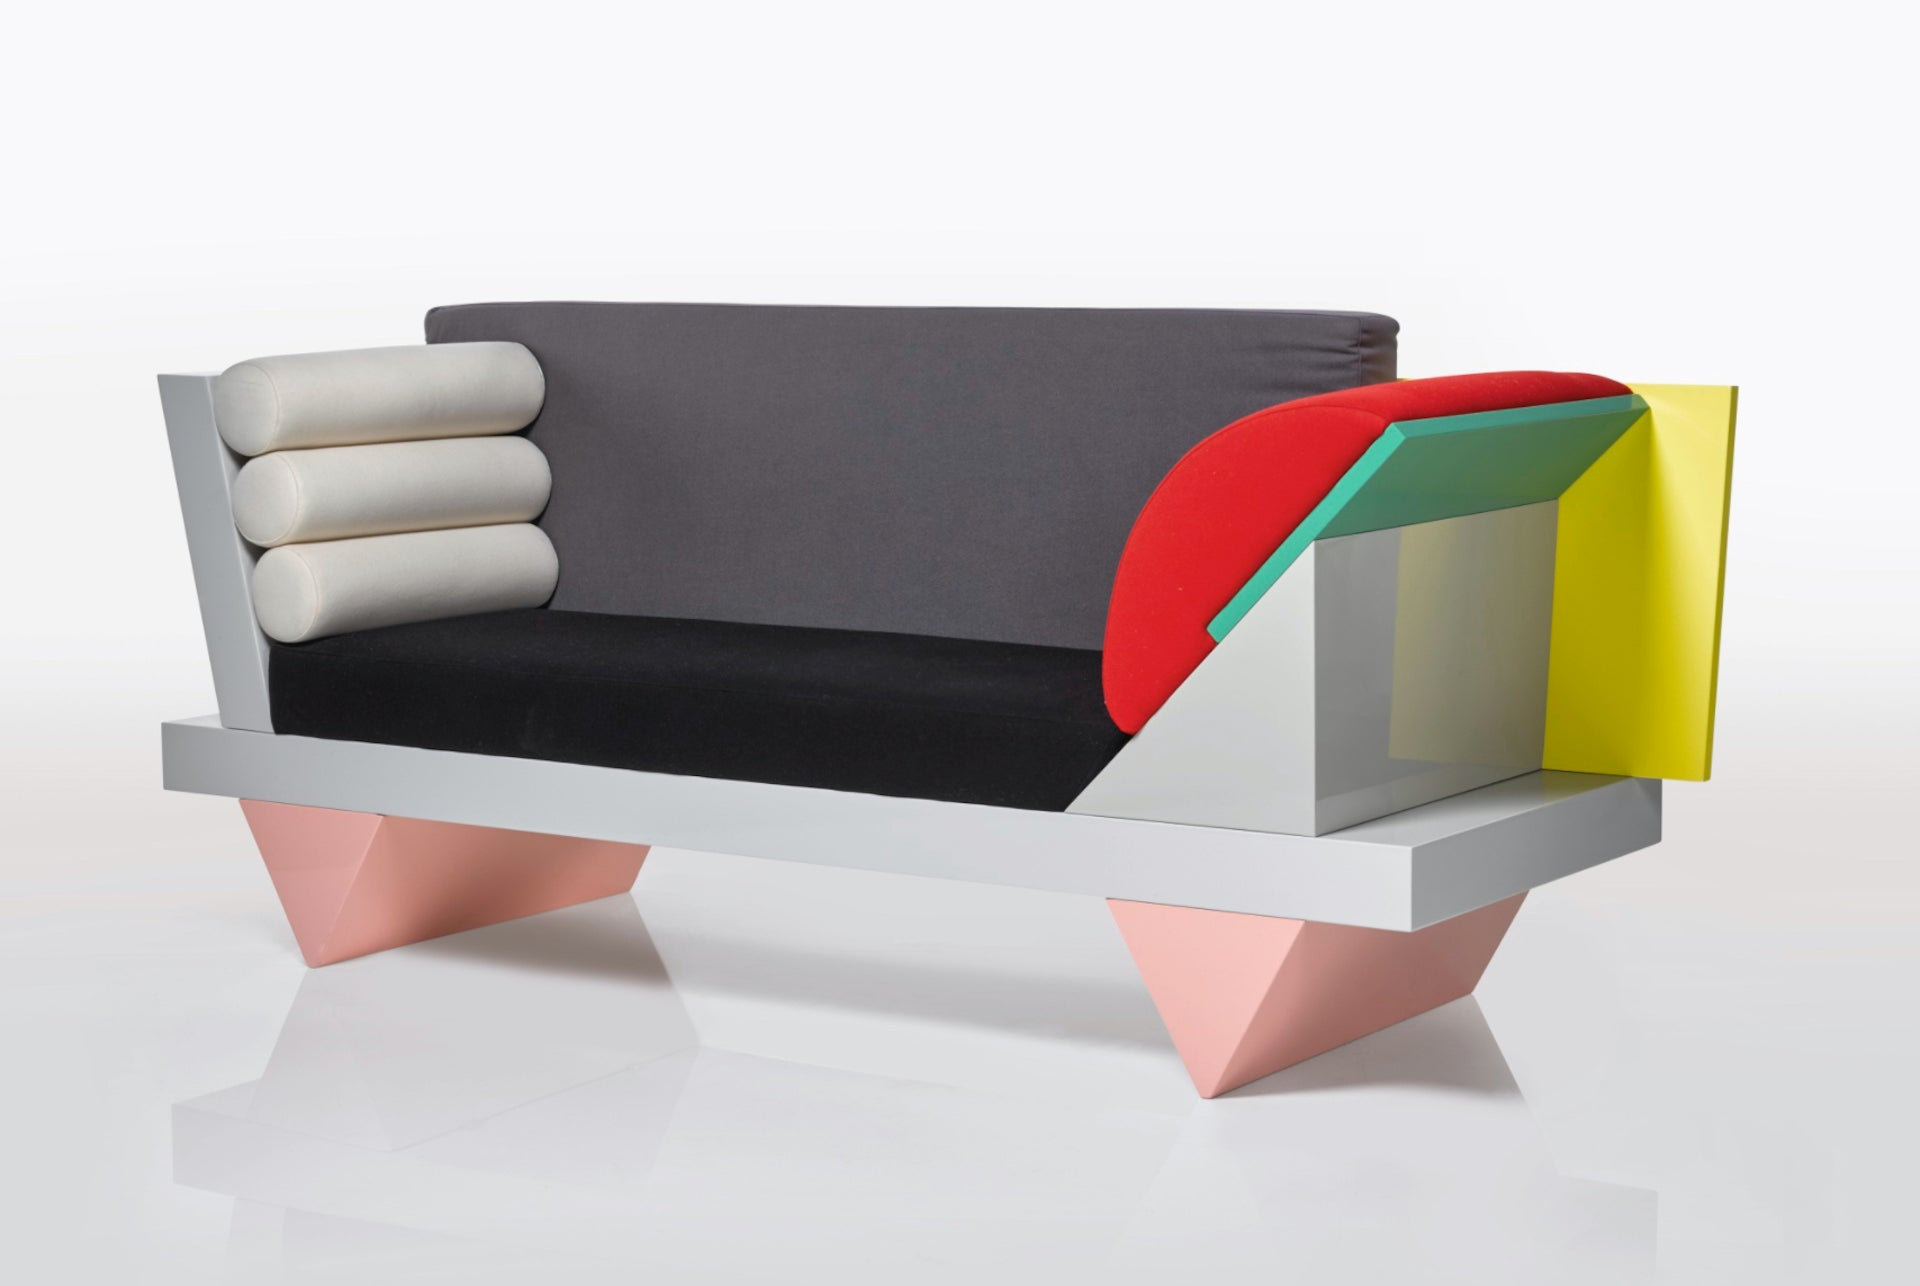 Big Sur Sofa by Peter Shire for Memphis, 1986. From the Collection of David Bowie. Sold at Sotheby's London in 2016 for £77,500. Photo © Sotheby's